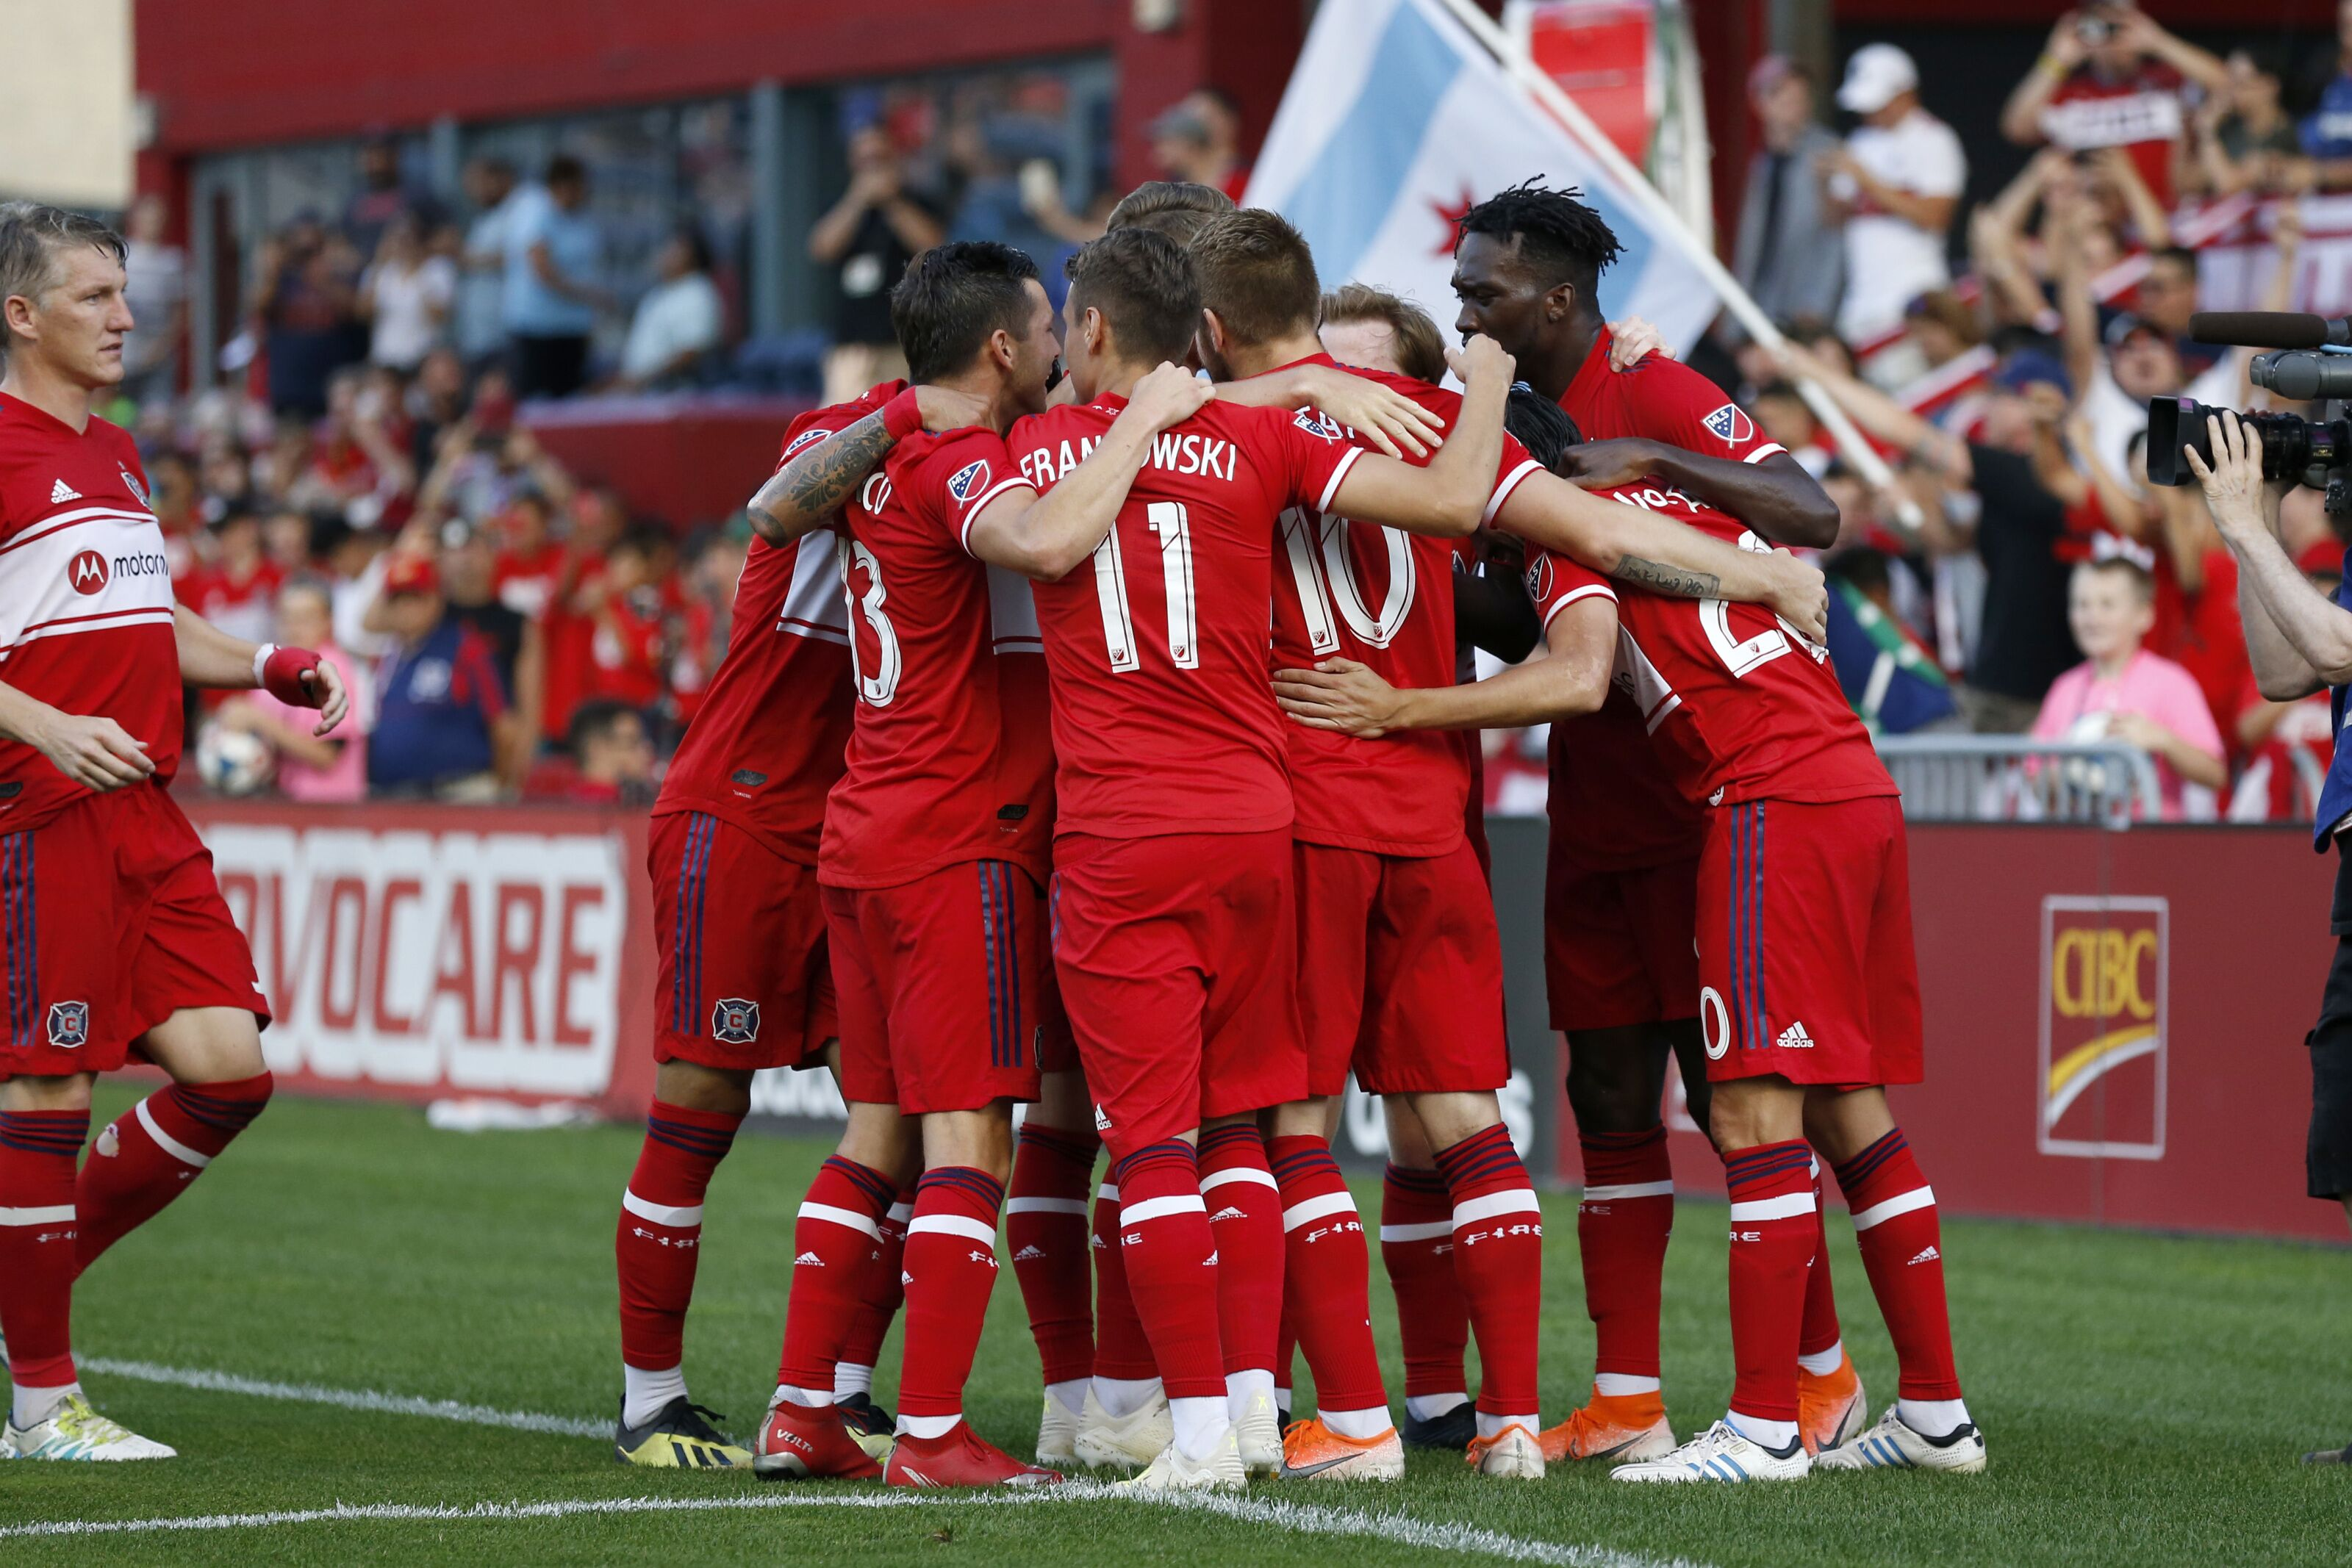 MLS: Chicago Fire takeover a game-changer for league expansion